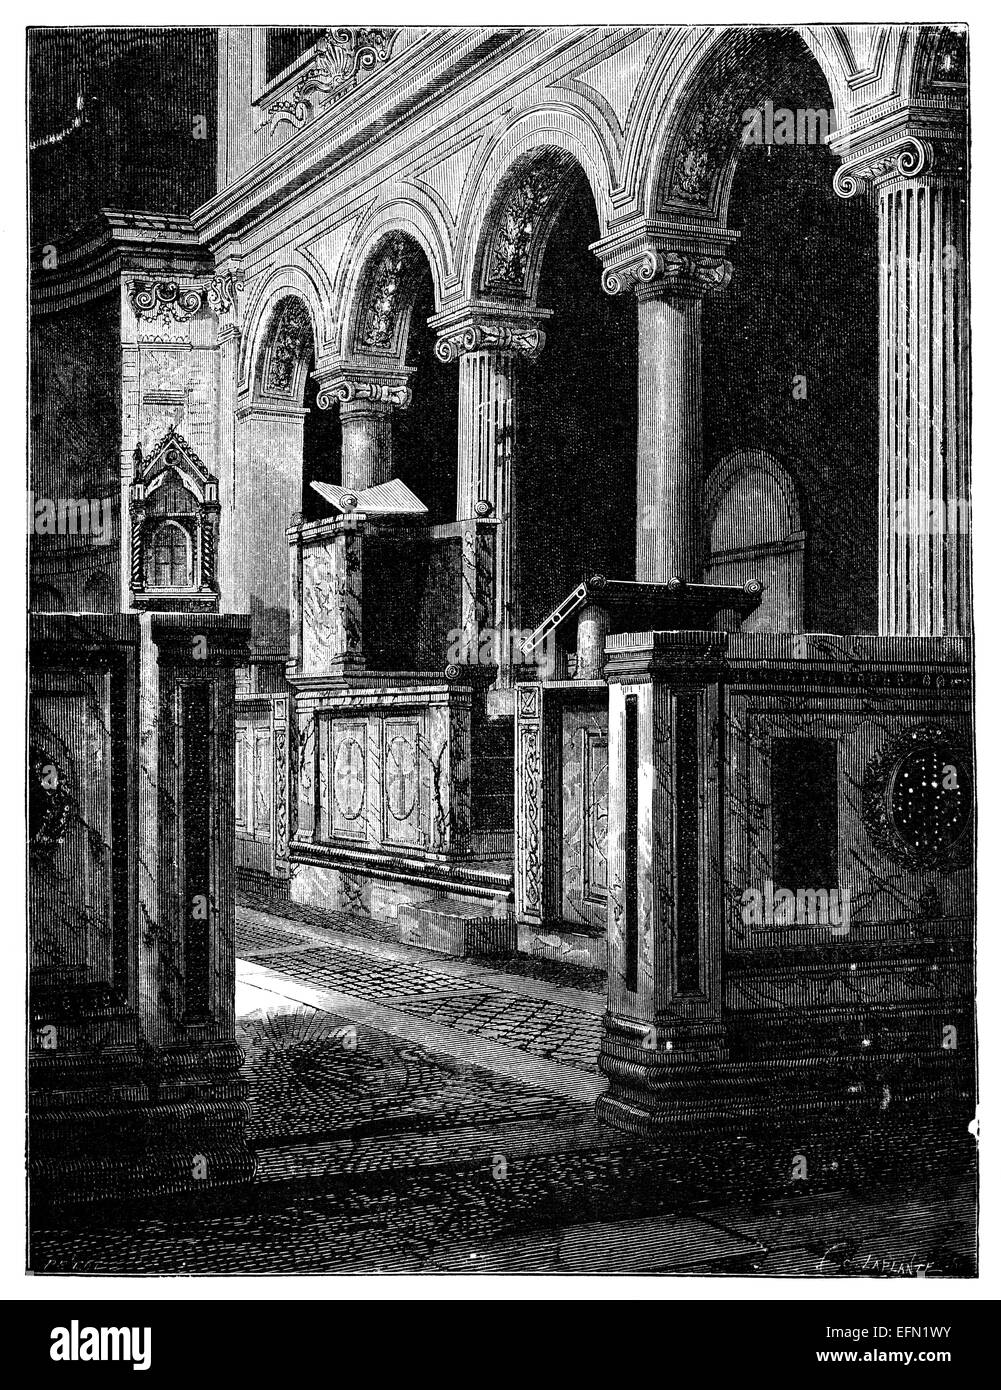 19th century engraving of the Basilica San Clemente, Rome, Italy Stock Photo